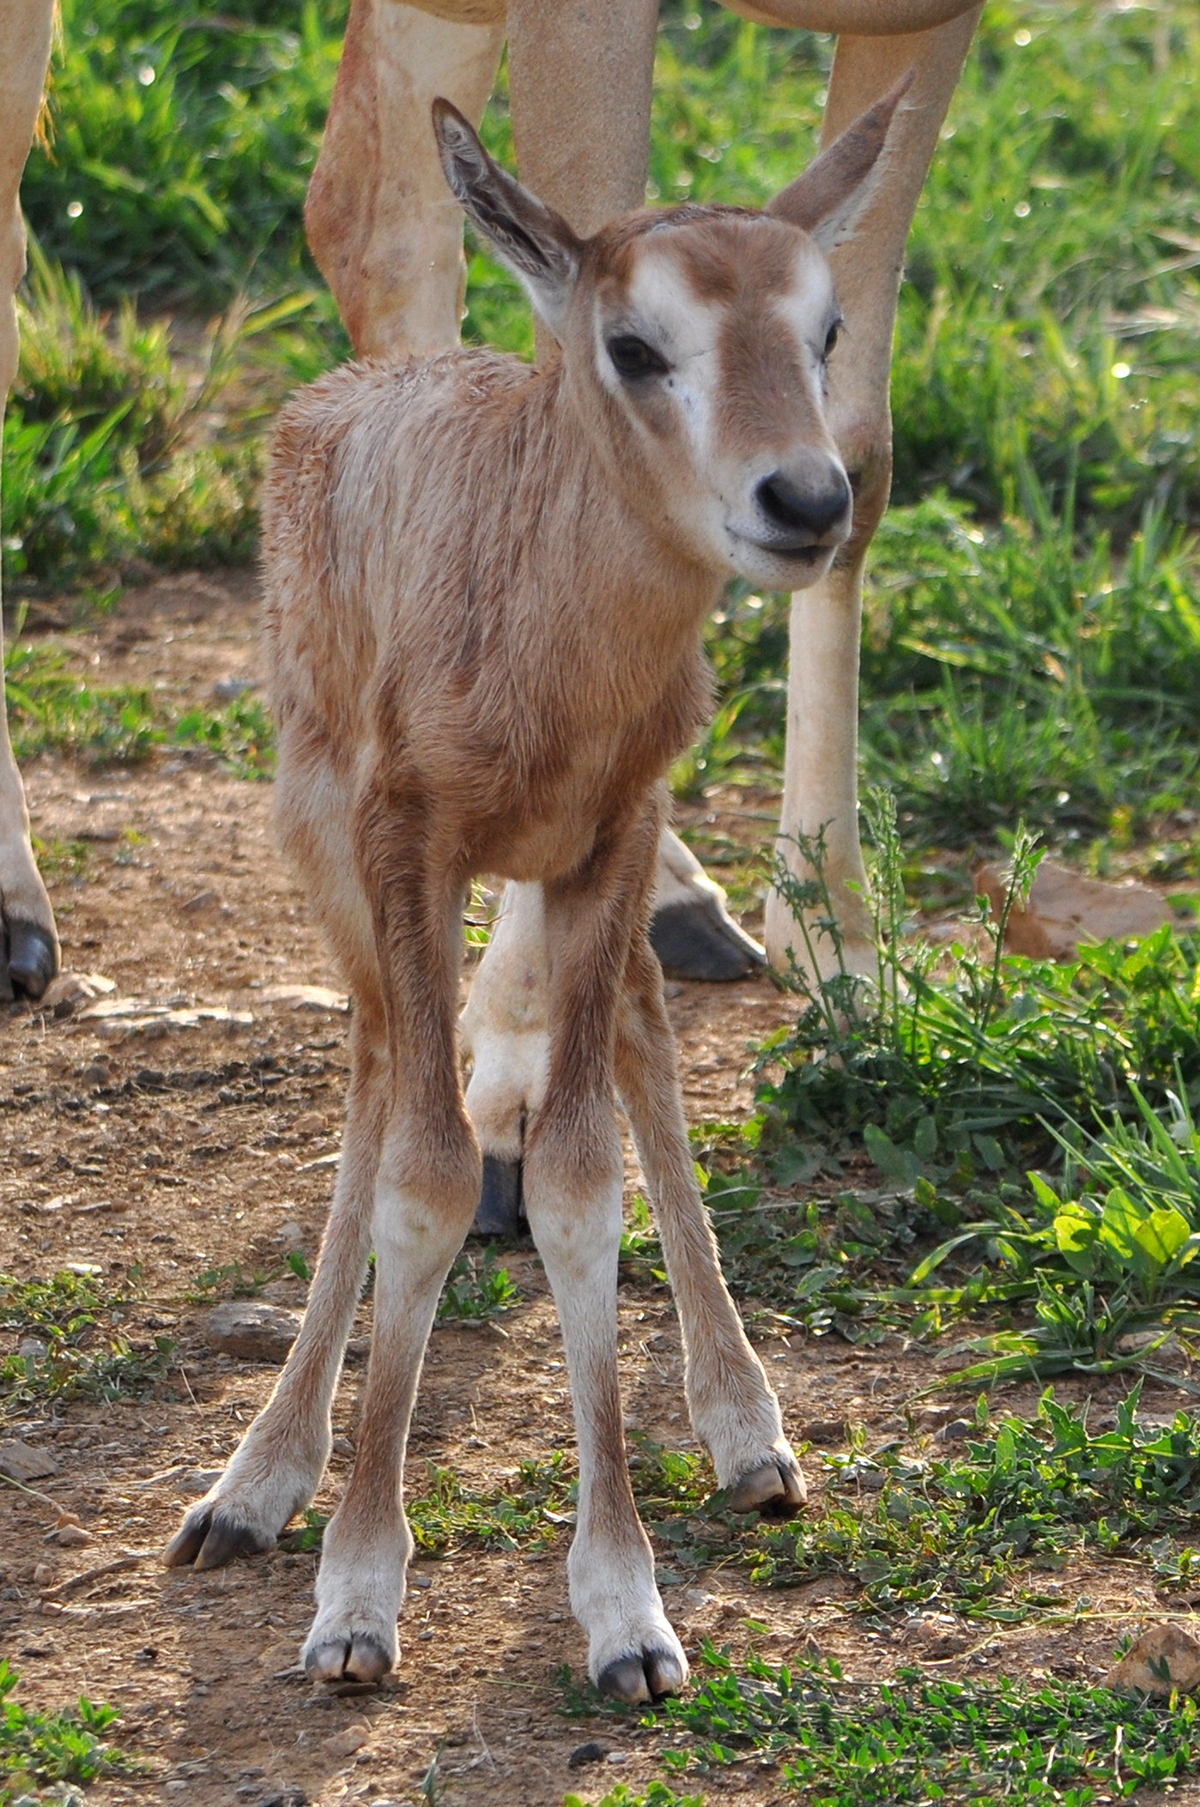 oryx calf stands outside near adult oryx